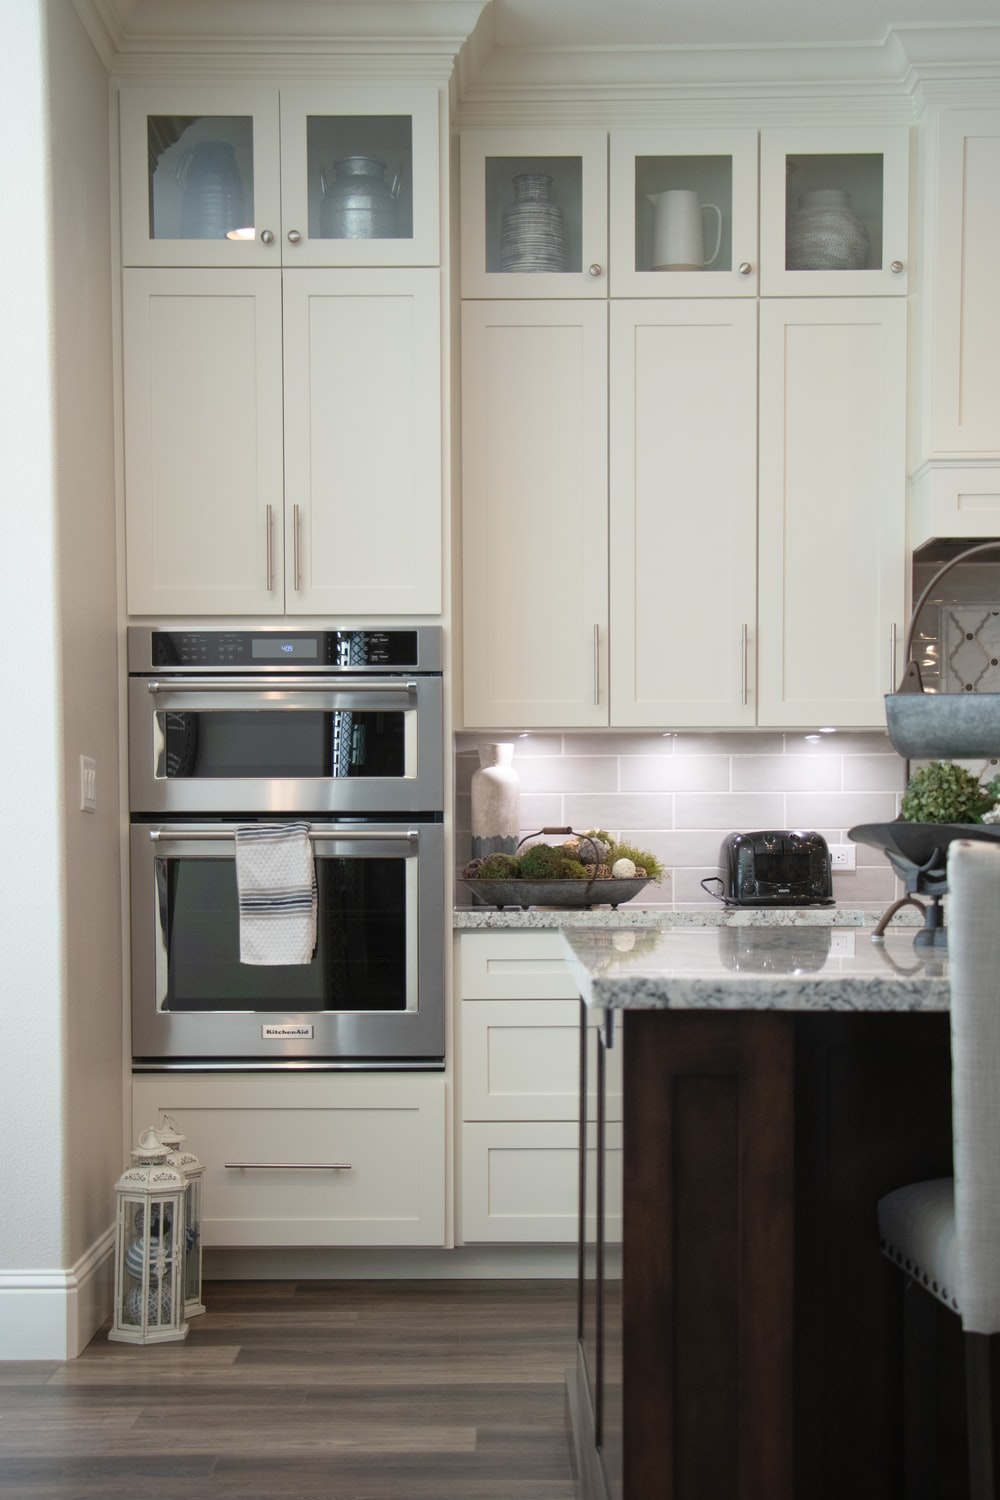 white wooden kitchen cabinet and stainless steel microwave oven